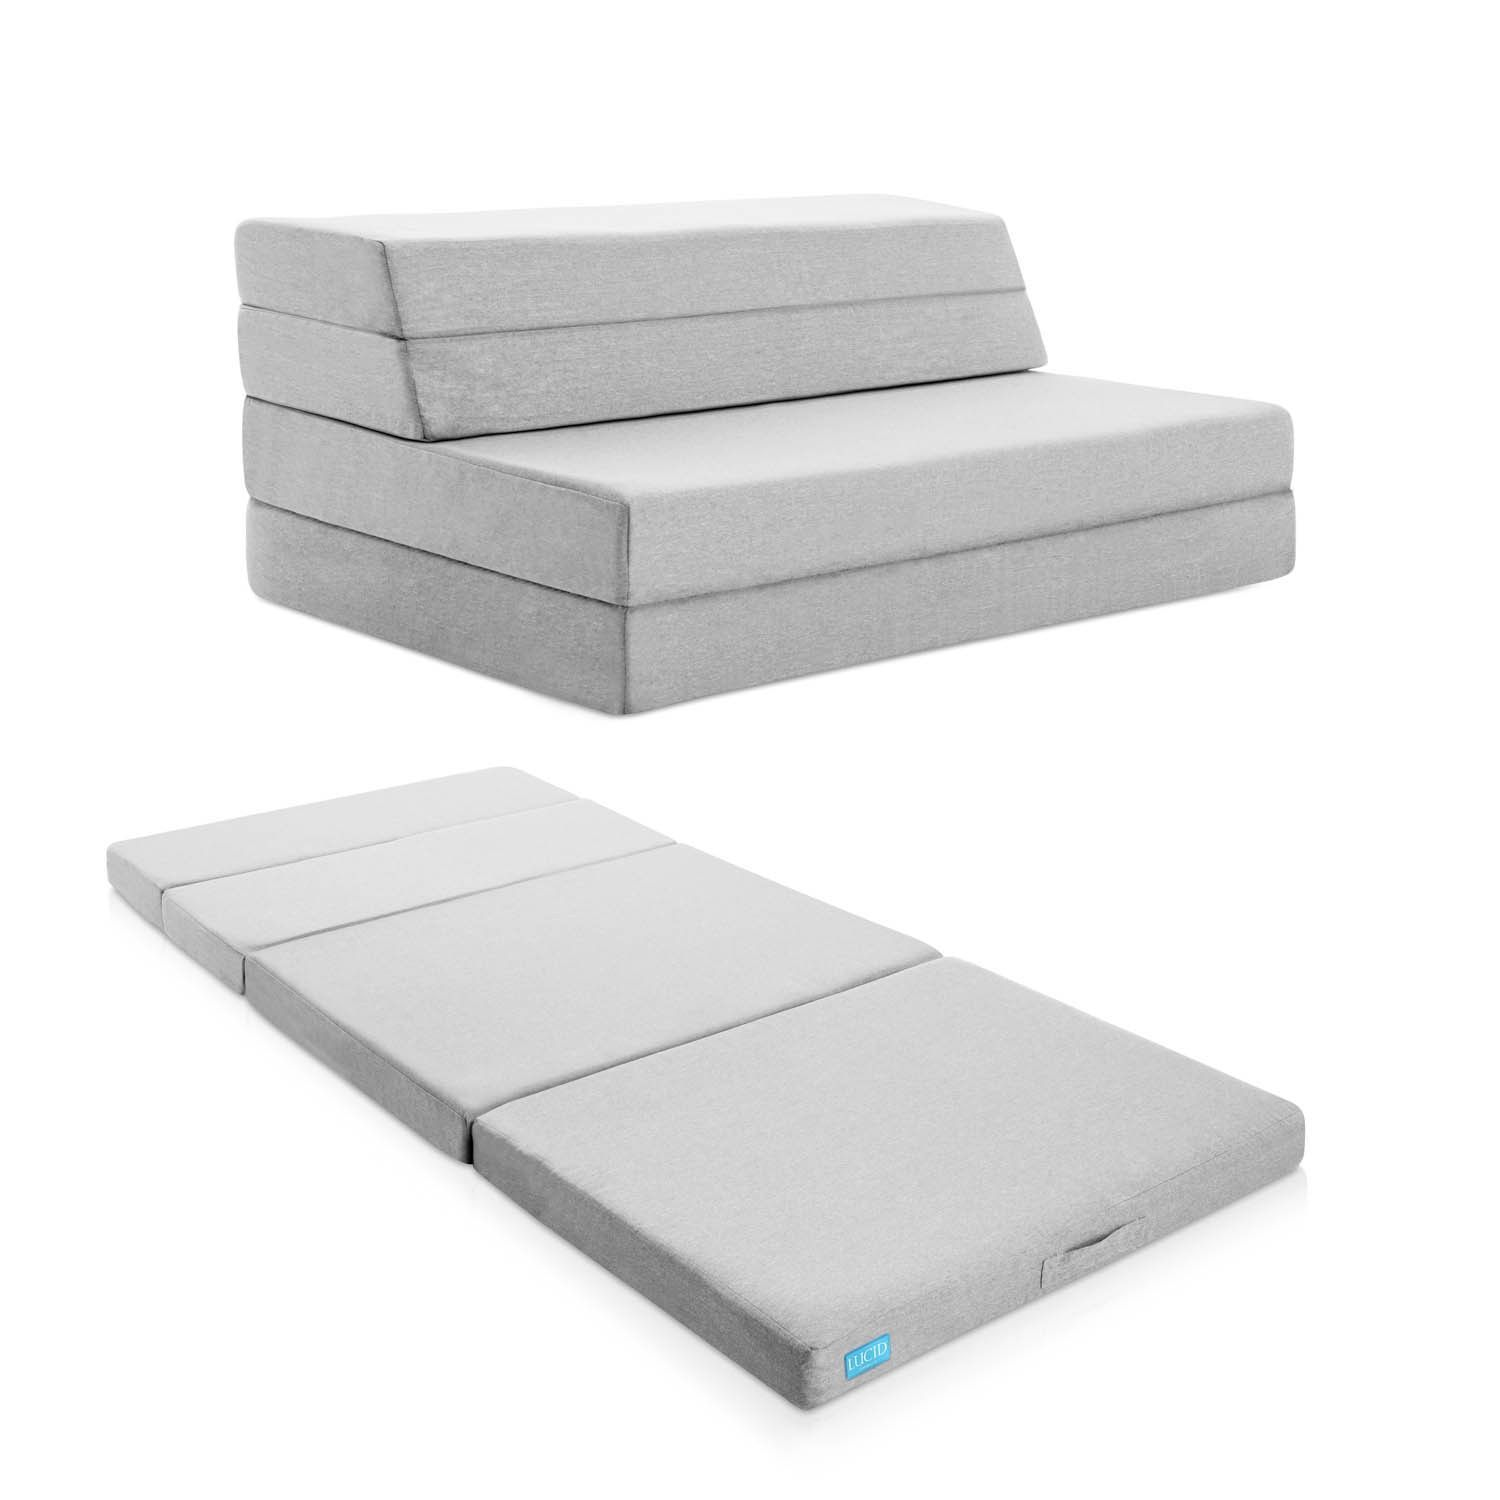 Foldable Foam Mattress Lucid 4 Inch Gel Memory Foam Folding Mattress Sofa Twin Xl